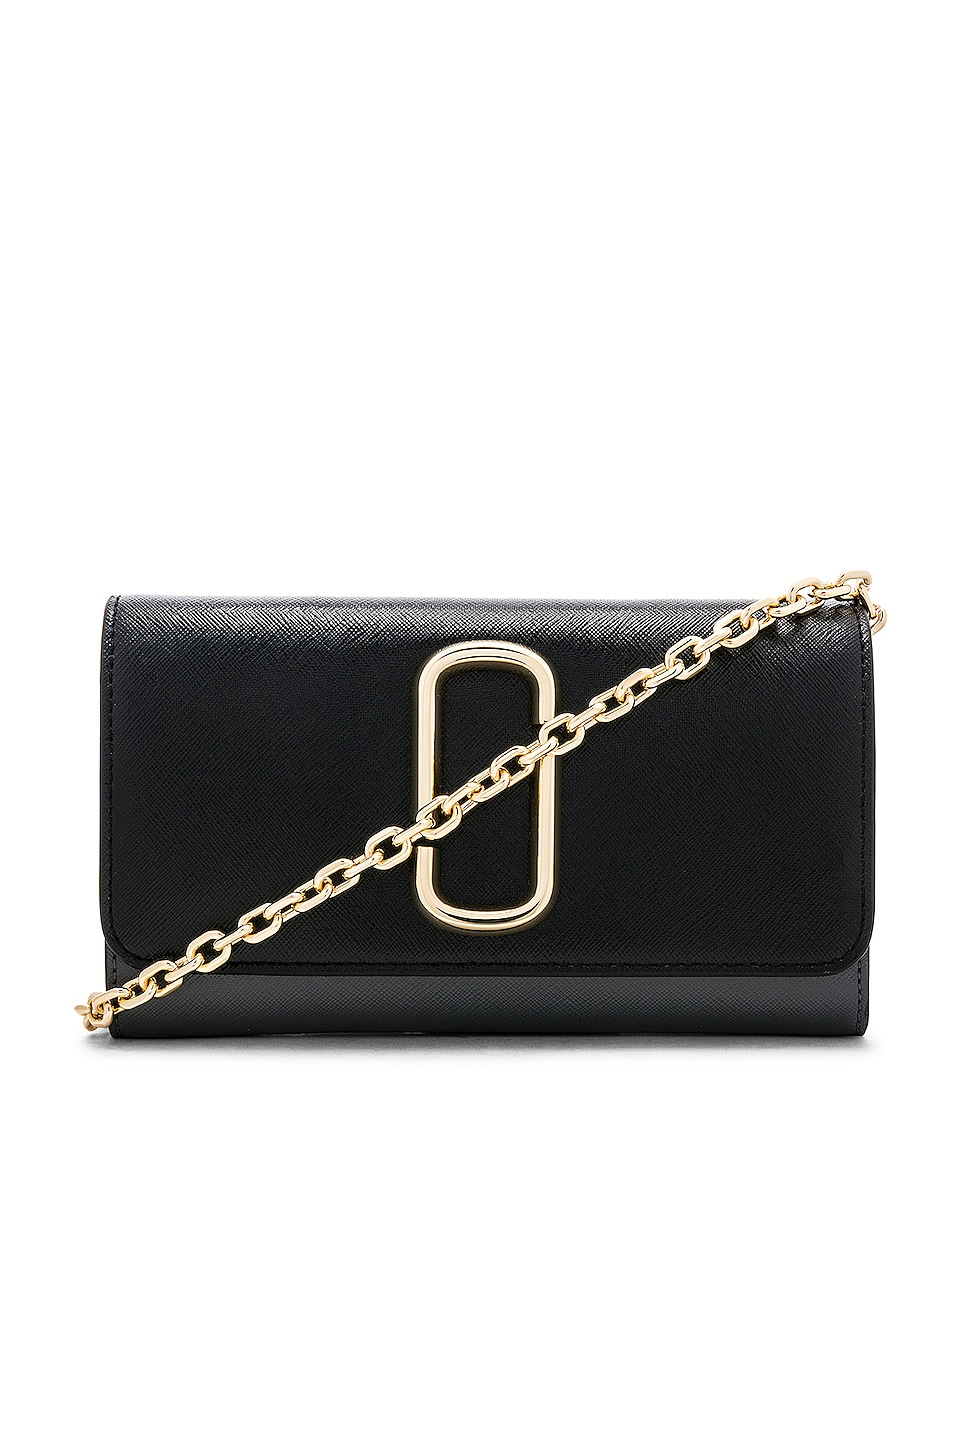 Marc Jacobs Wallet On Chain Bag in Black Multi